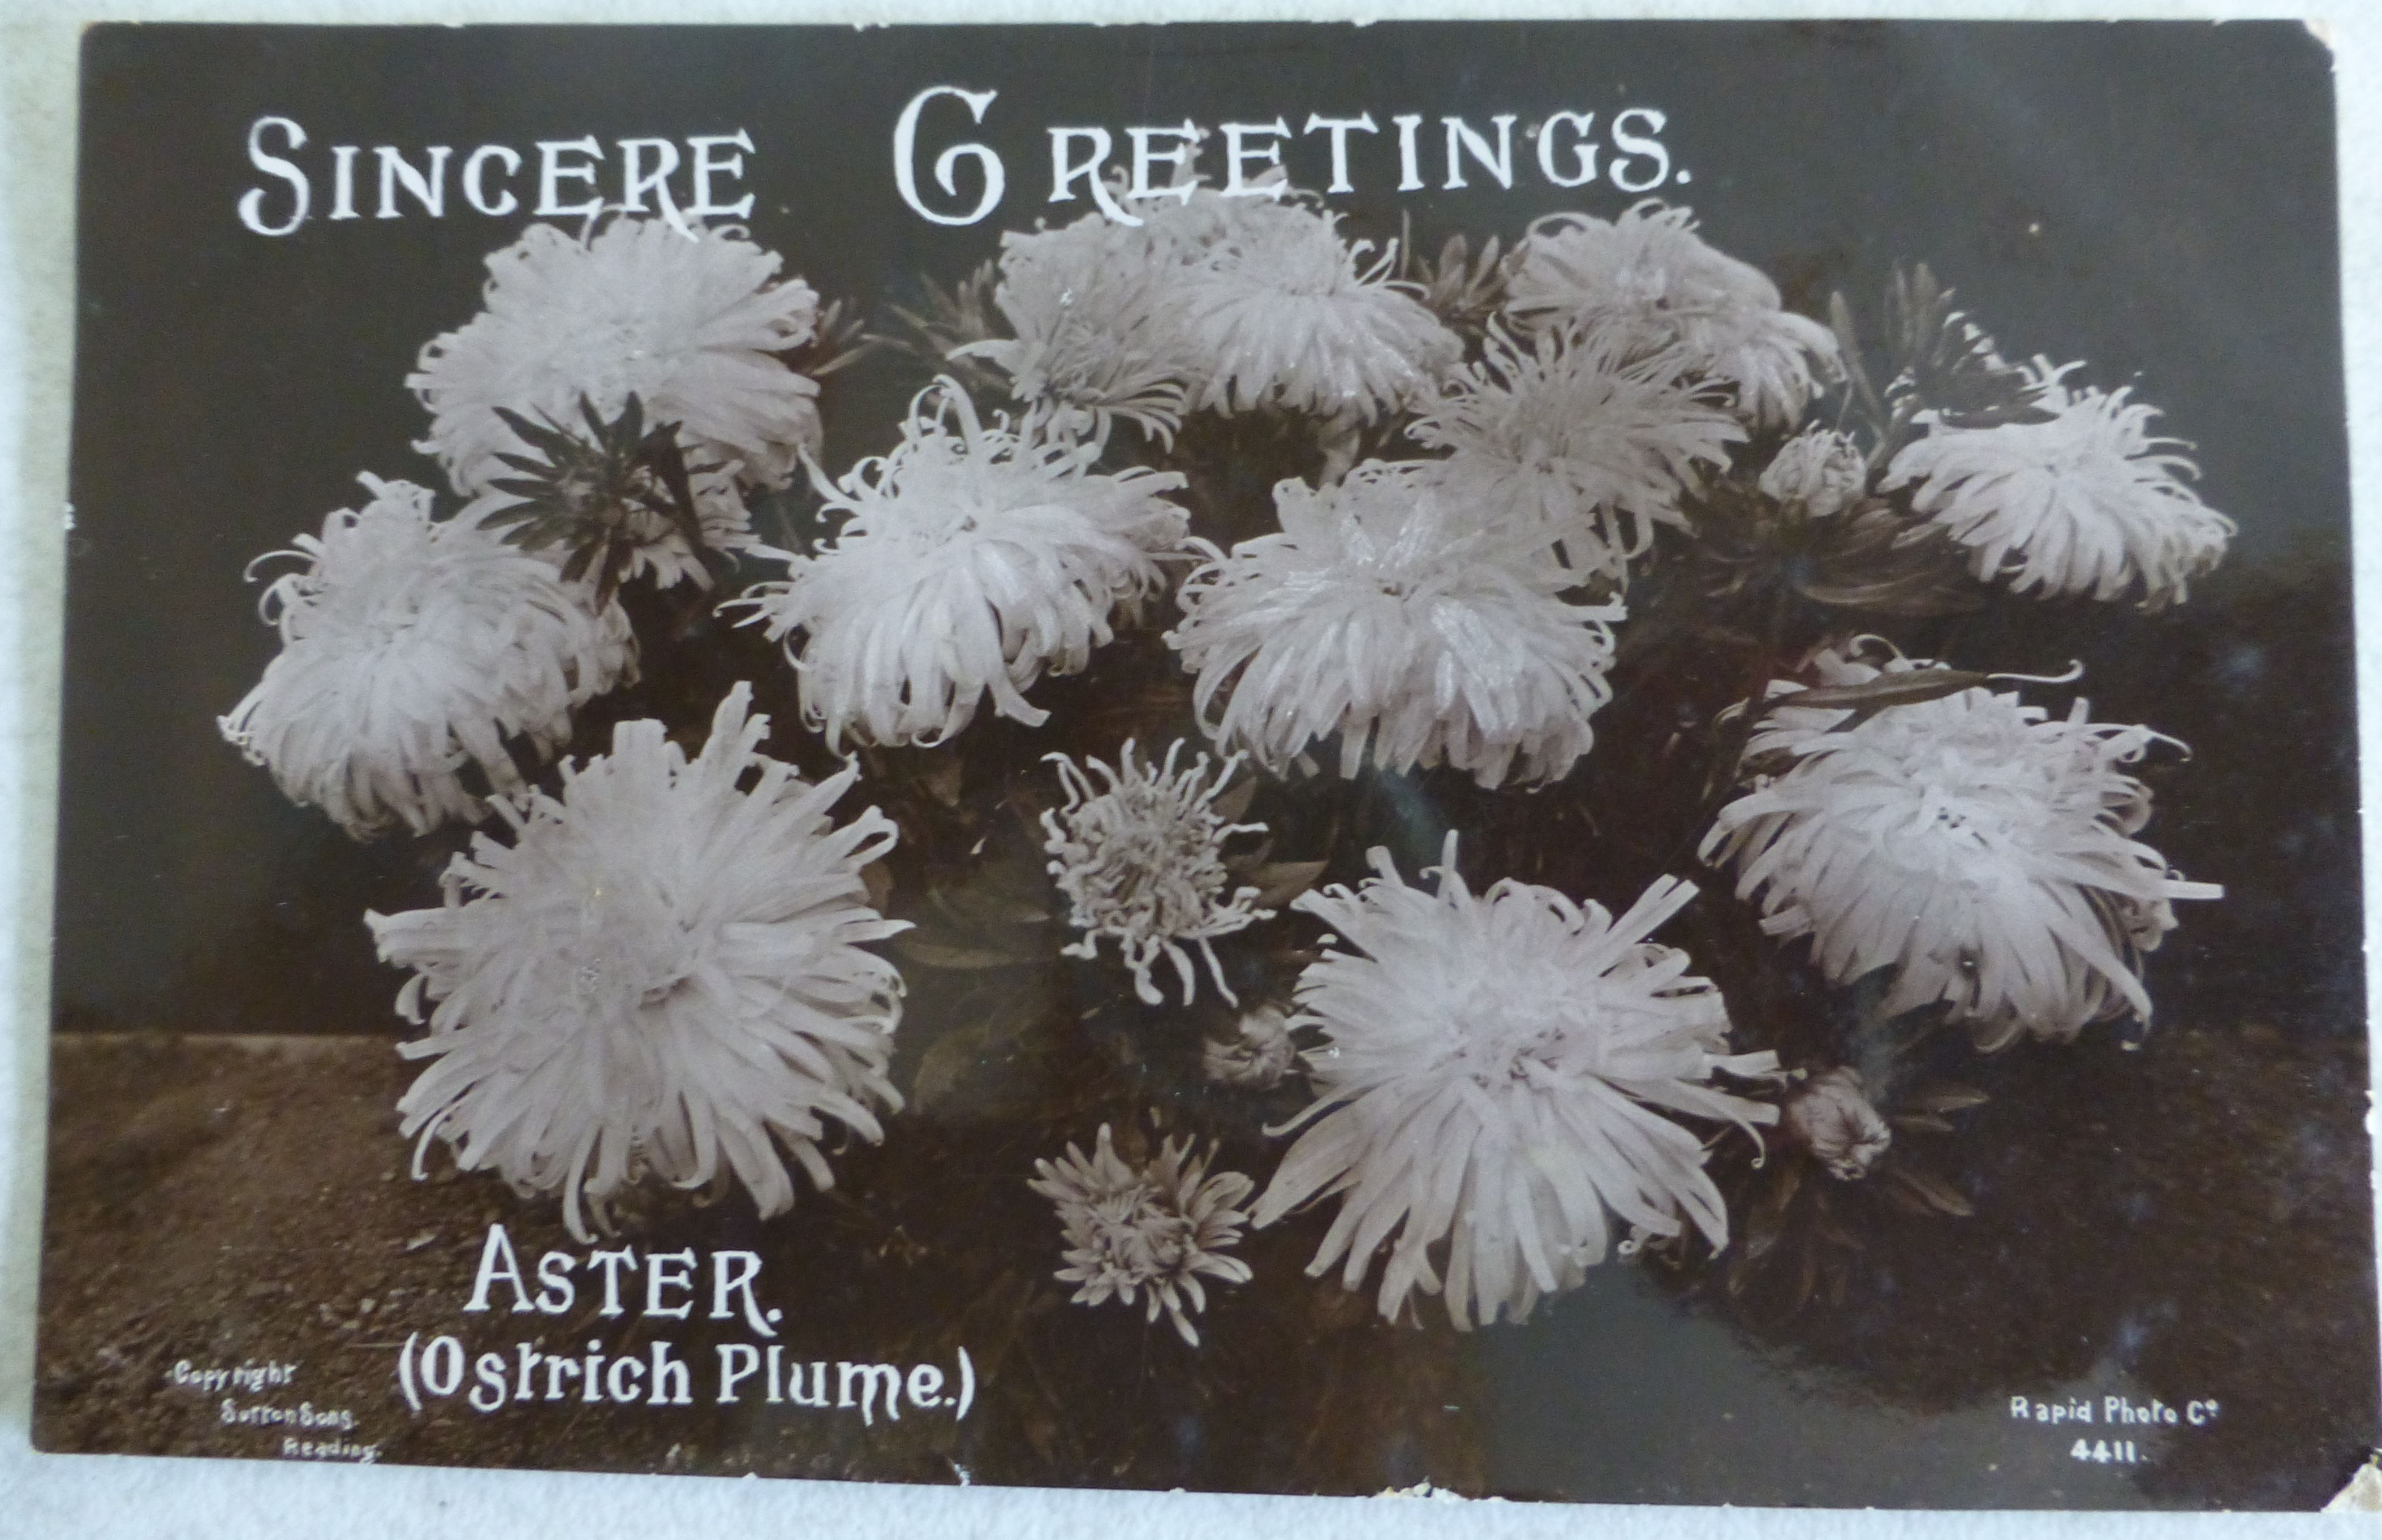 A postcard copyright Sutton & Sons Reading, Sincere Greetings showing a bunch of Aster (Ostrich Plume) by the Rapid Photo Co.